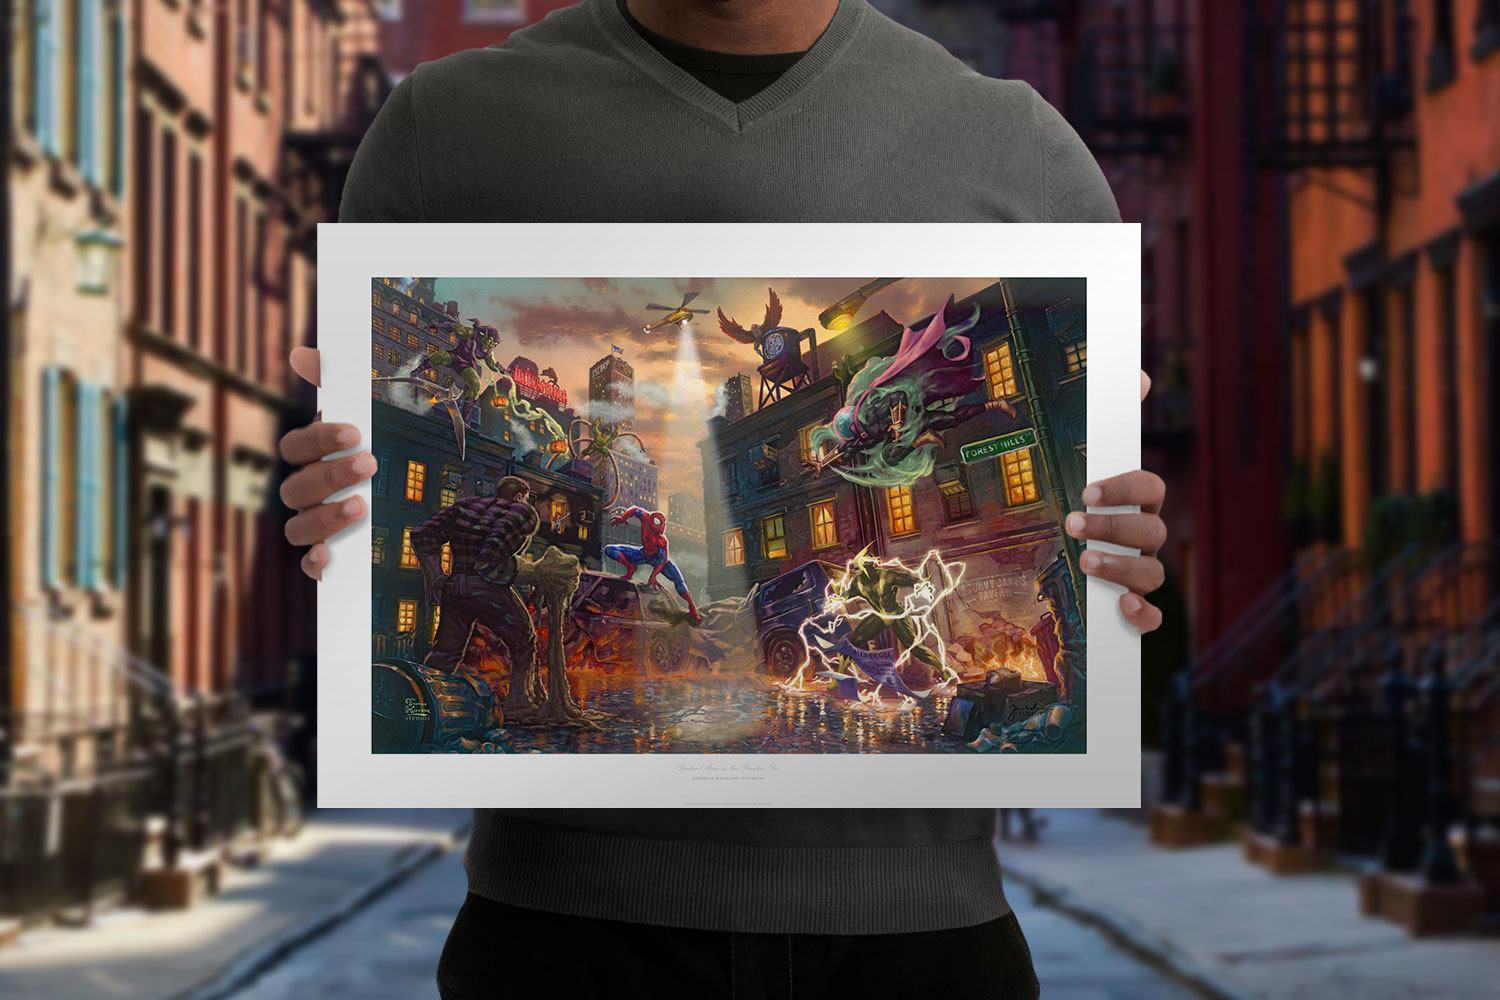 Spider-Man vs. the Sinister Six Art Print feature image